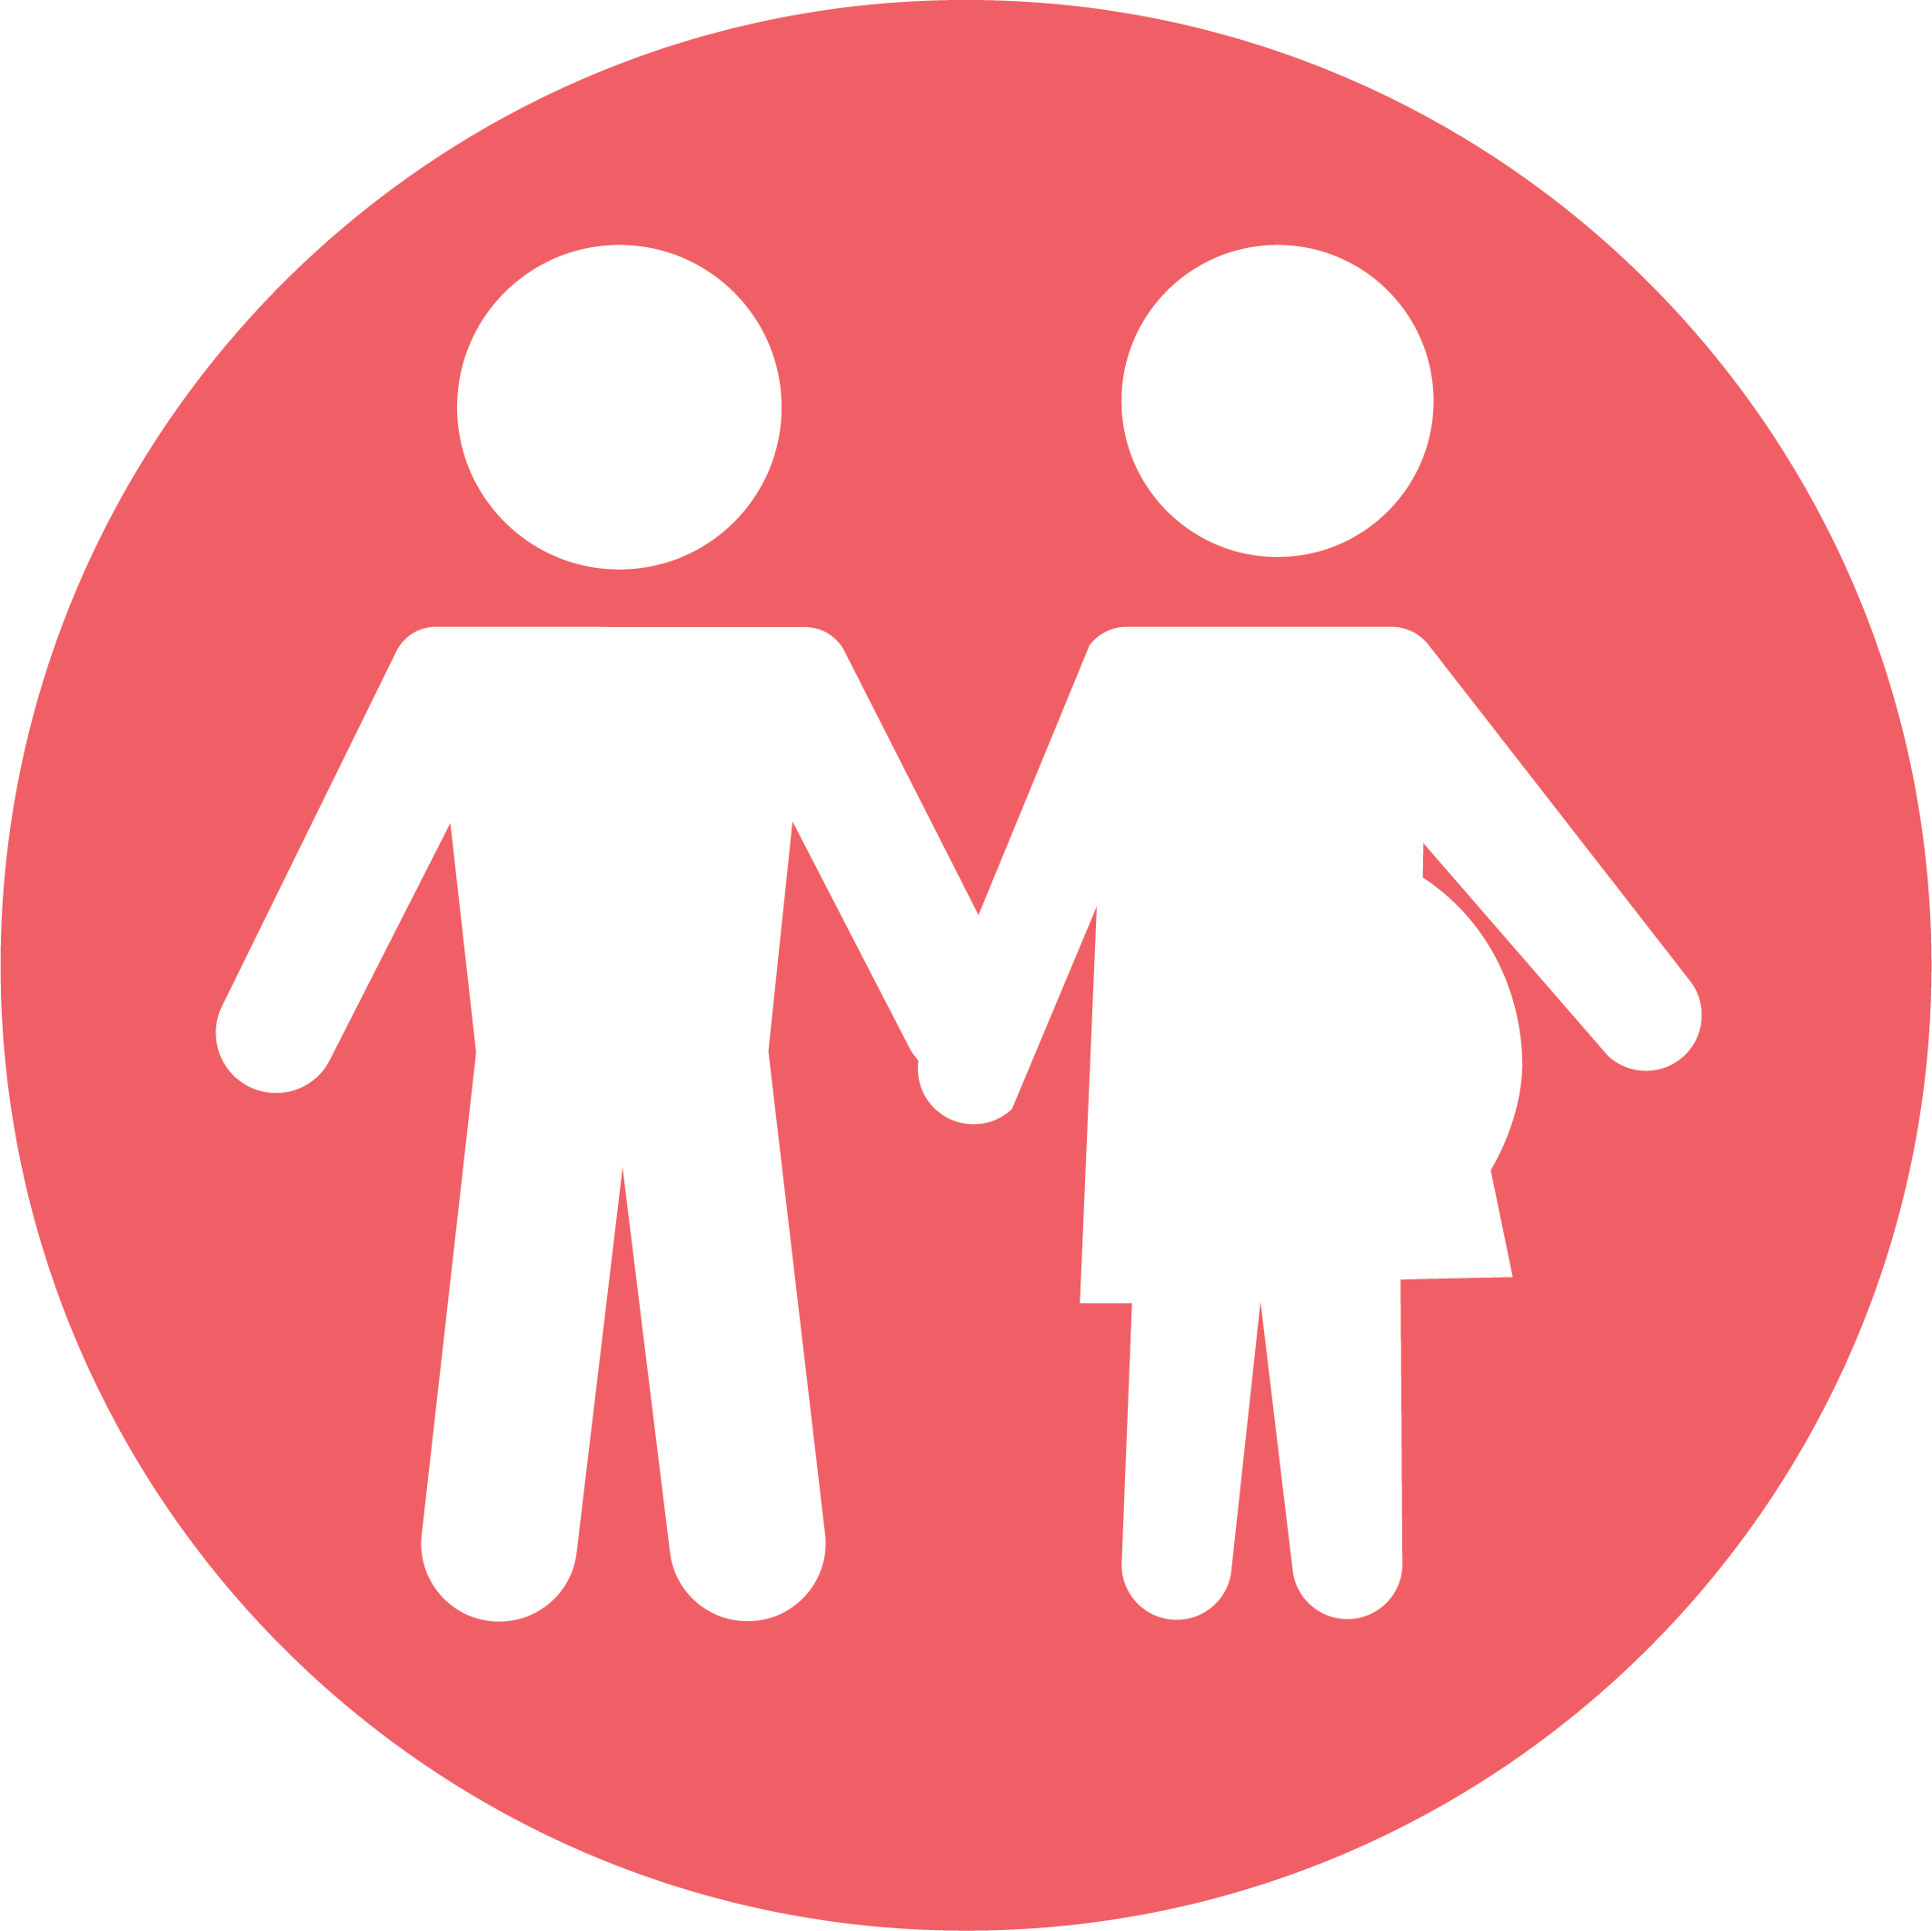 pregnant woman with partner or support person